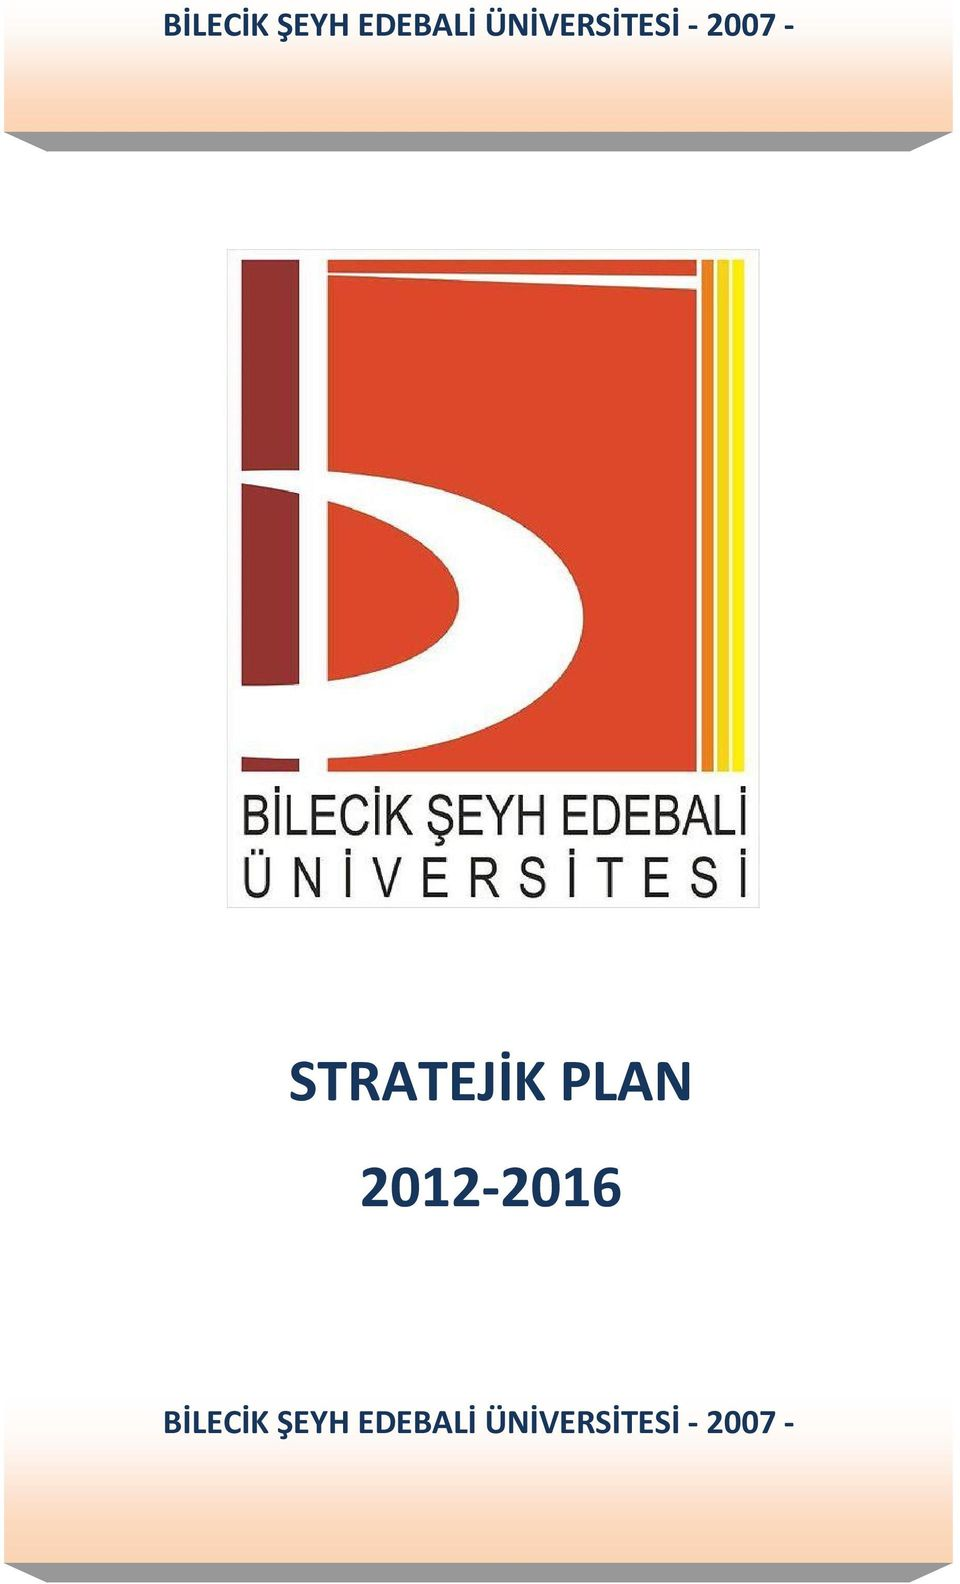 STRATEJİK PLAN 2012-2016